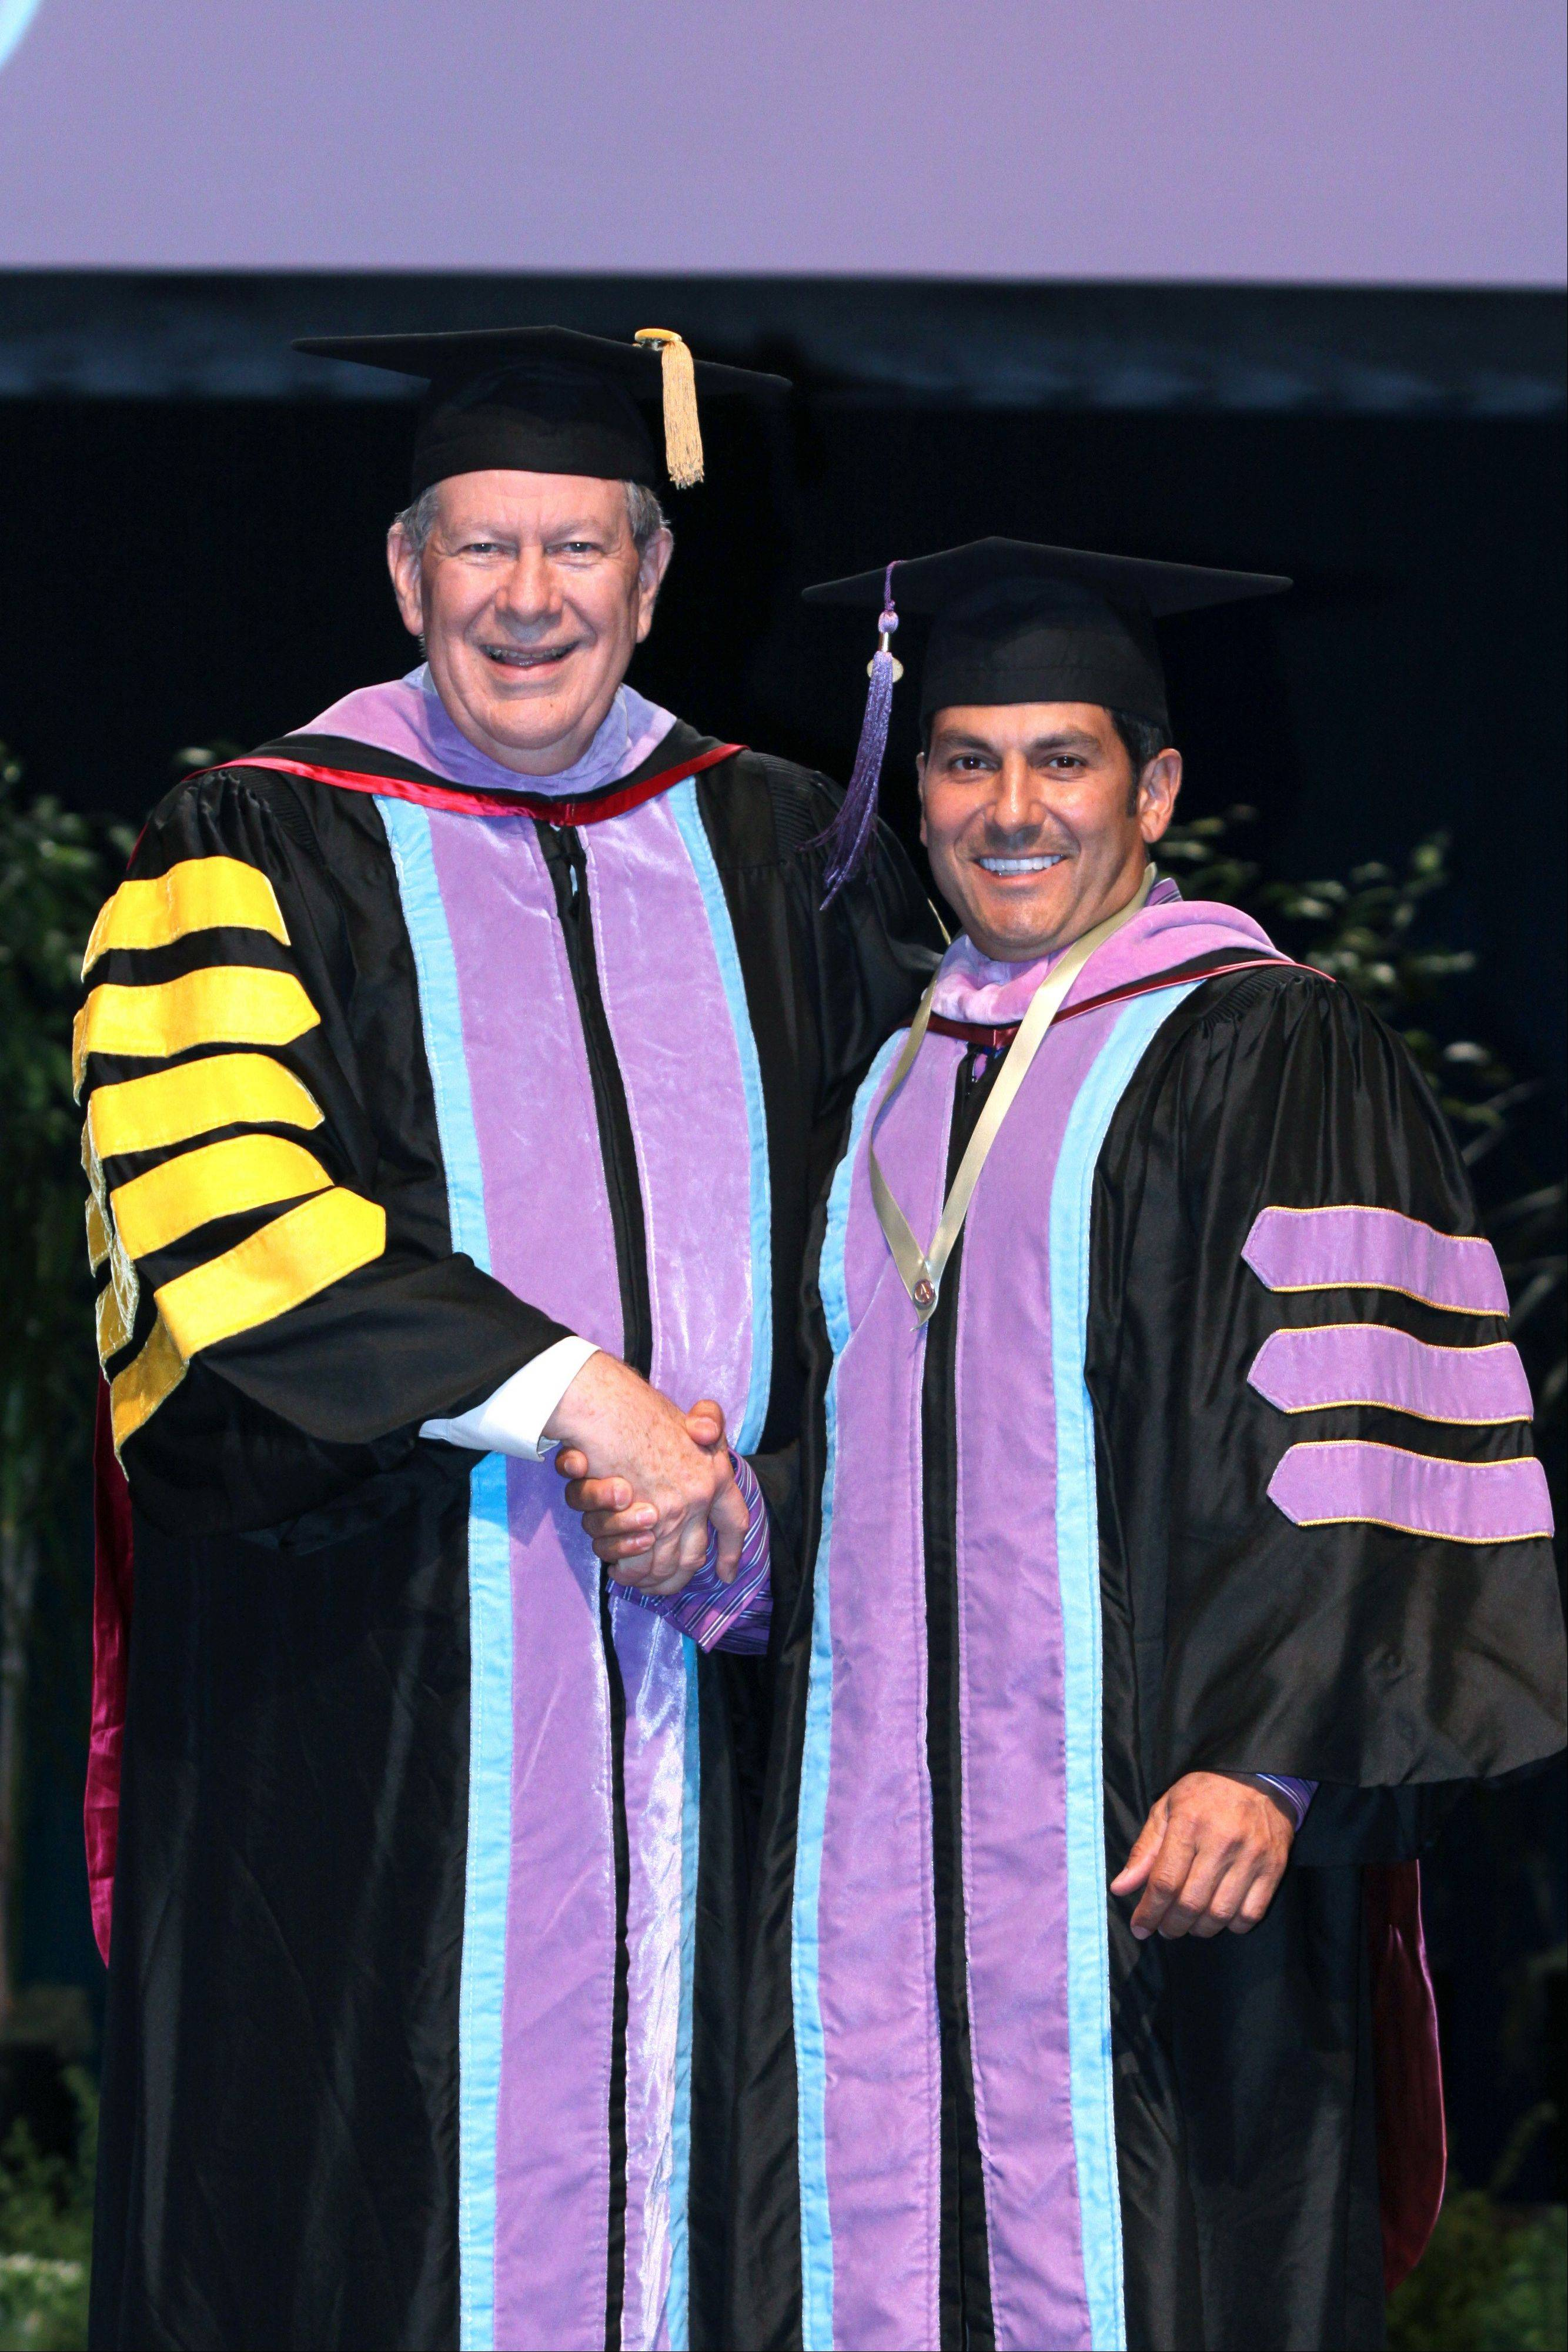 Michael R. Errico, at right, receives the Academy of General Dentistry's 2012 Fellowship Award from Jeffrey M. Cole, (with gold bars on the gown) president of the organization.